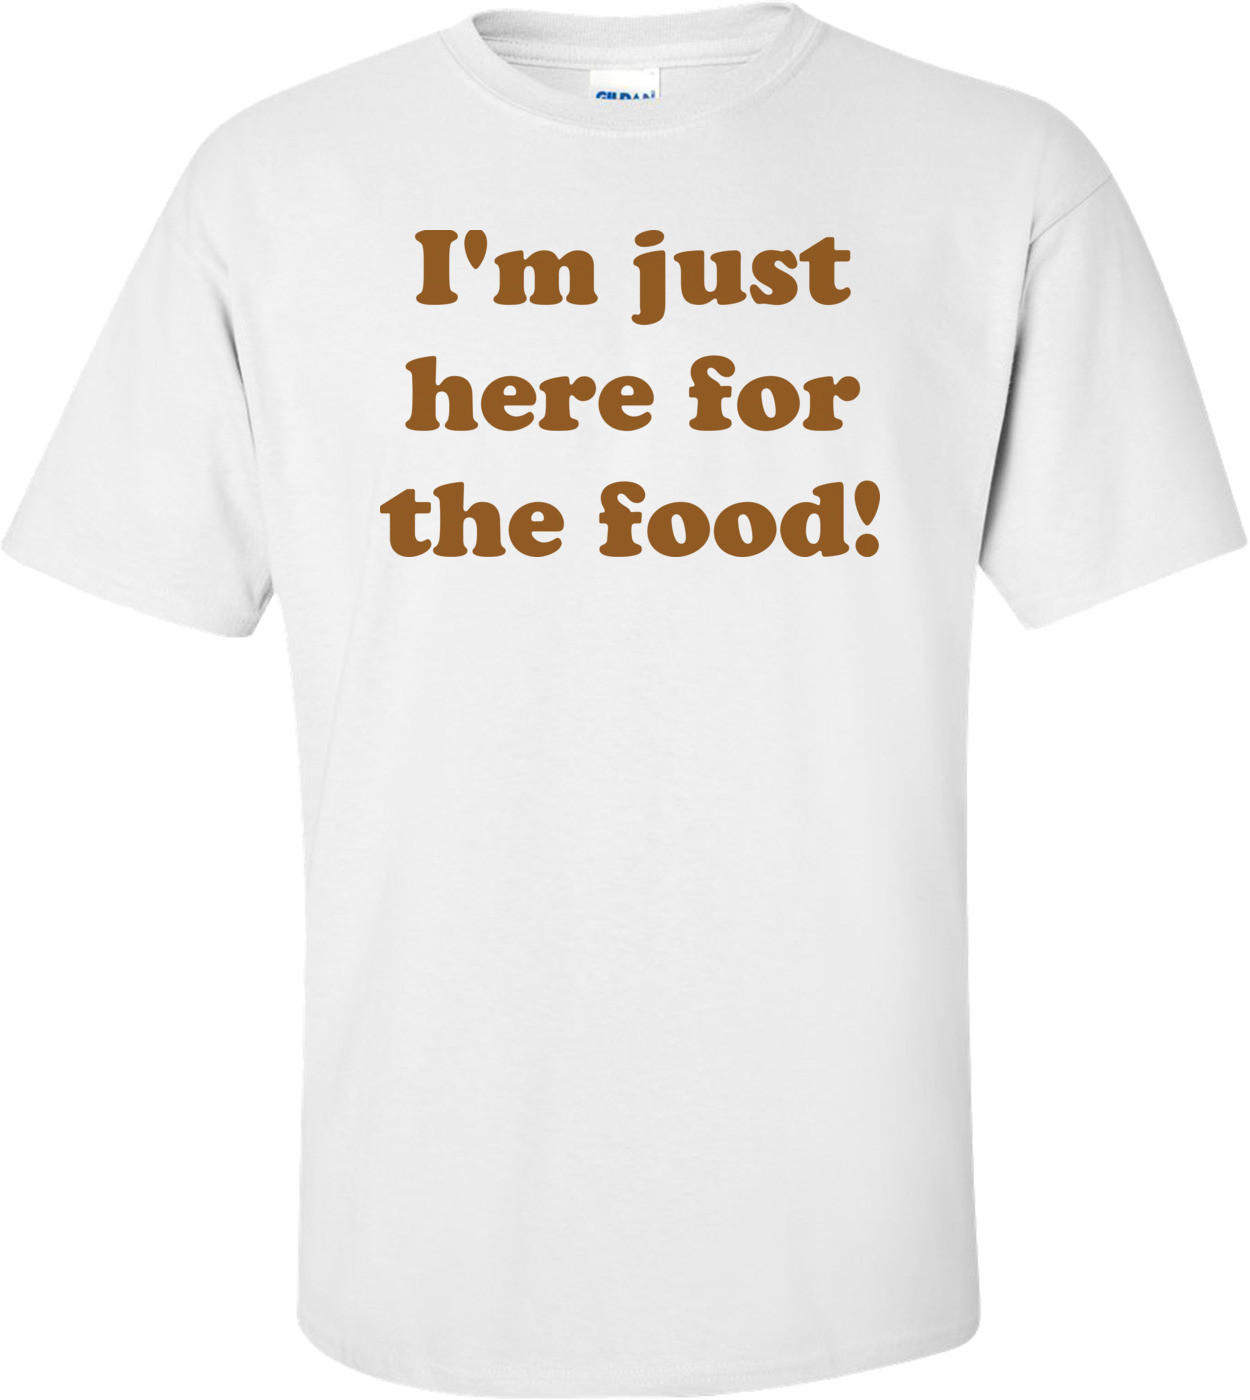 I'm Just Here For The Food! Shirt